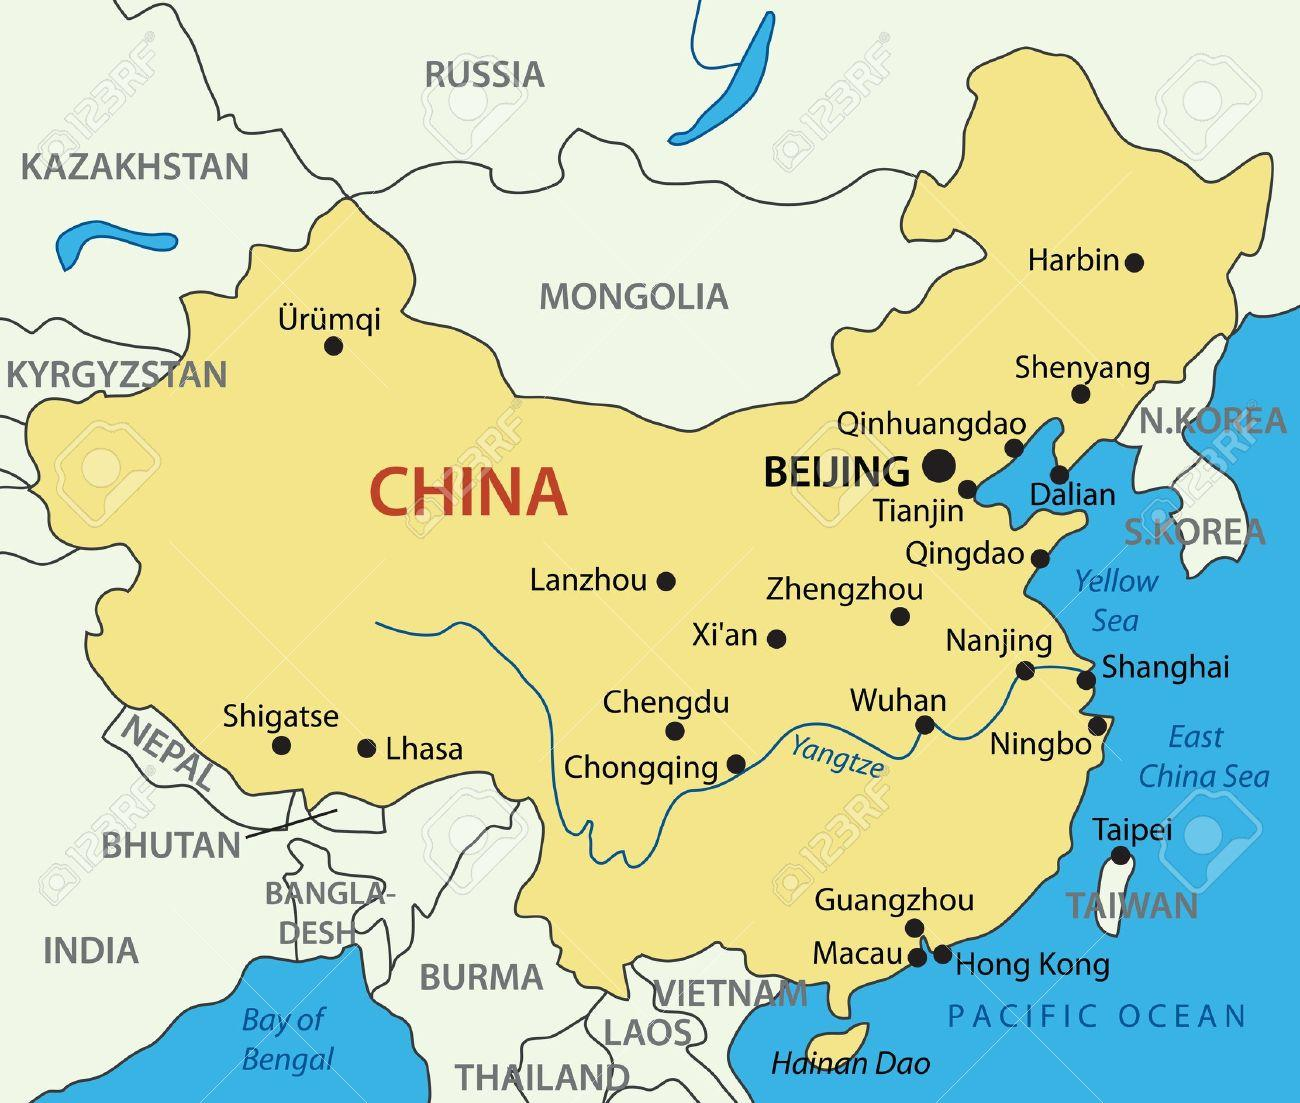 Map of China yellow sea Yellow sea China map Eastern Asia Asia